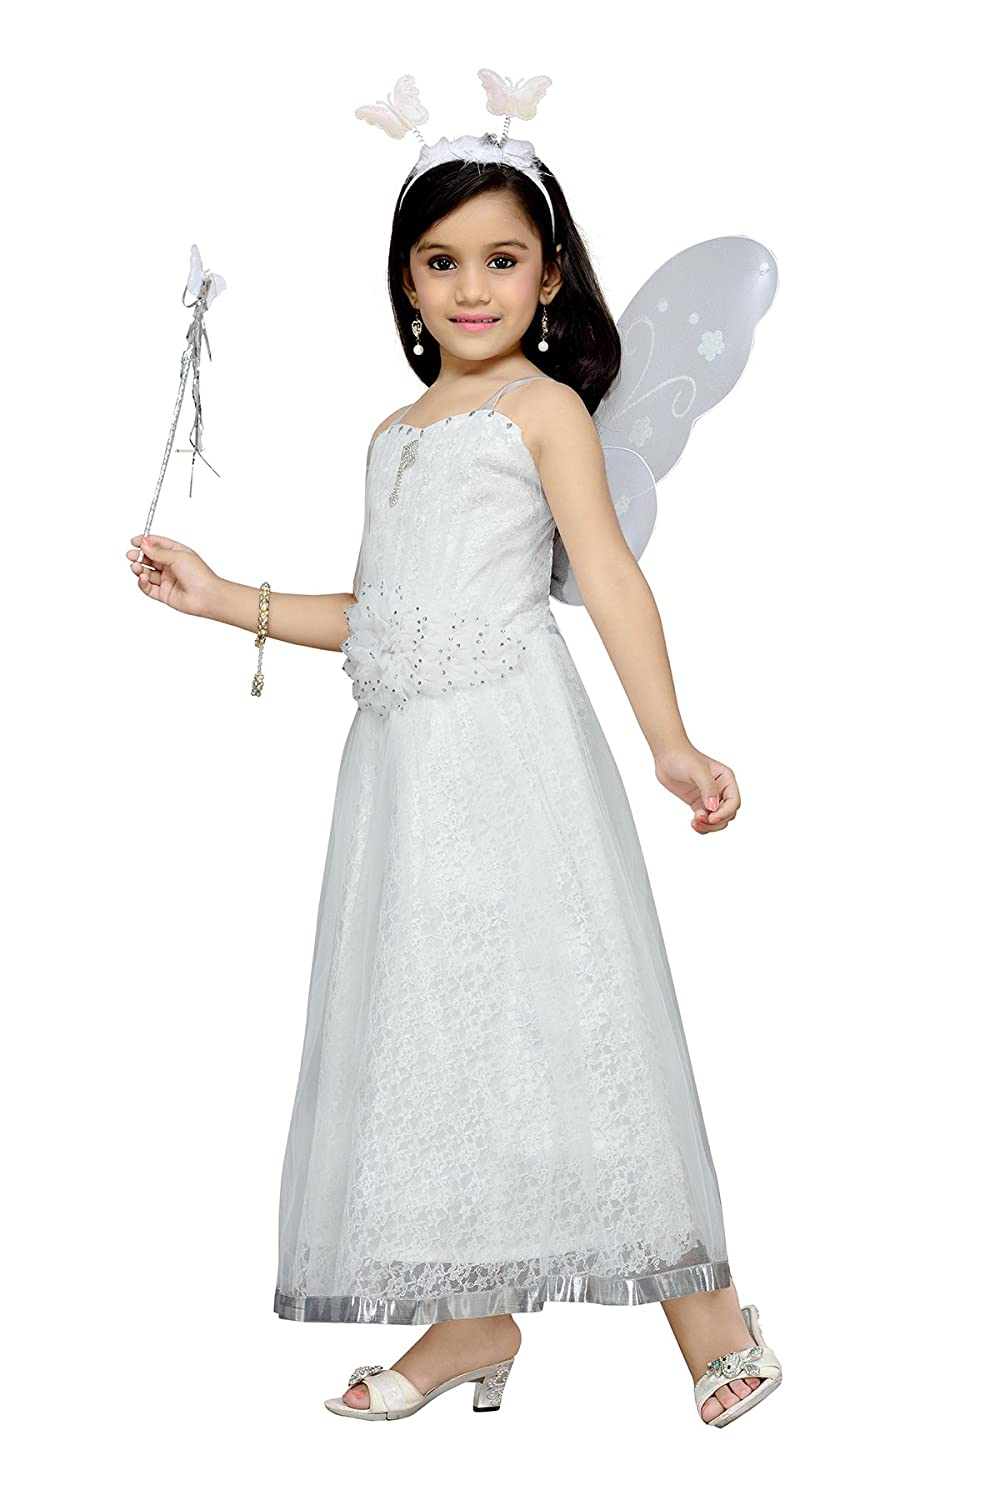 6676463a2ce83 Aarika Girl's Christmas Angel Gown with Butterfly Wings: Amazon.in:  Clothing & Accessories